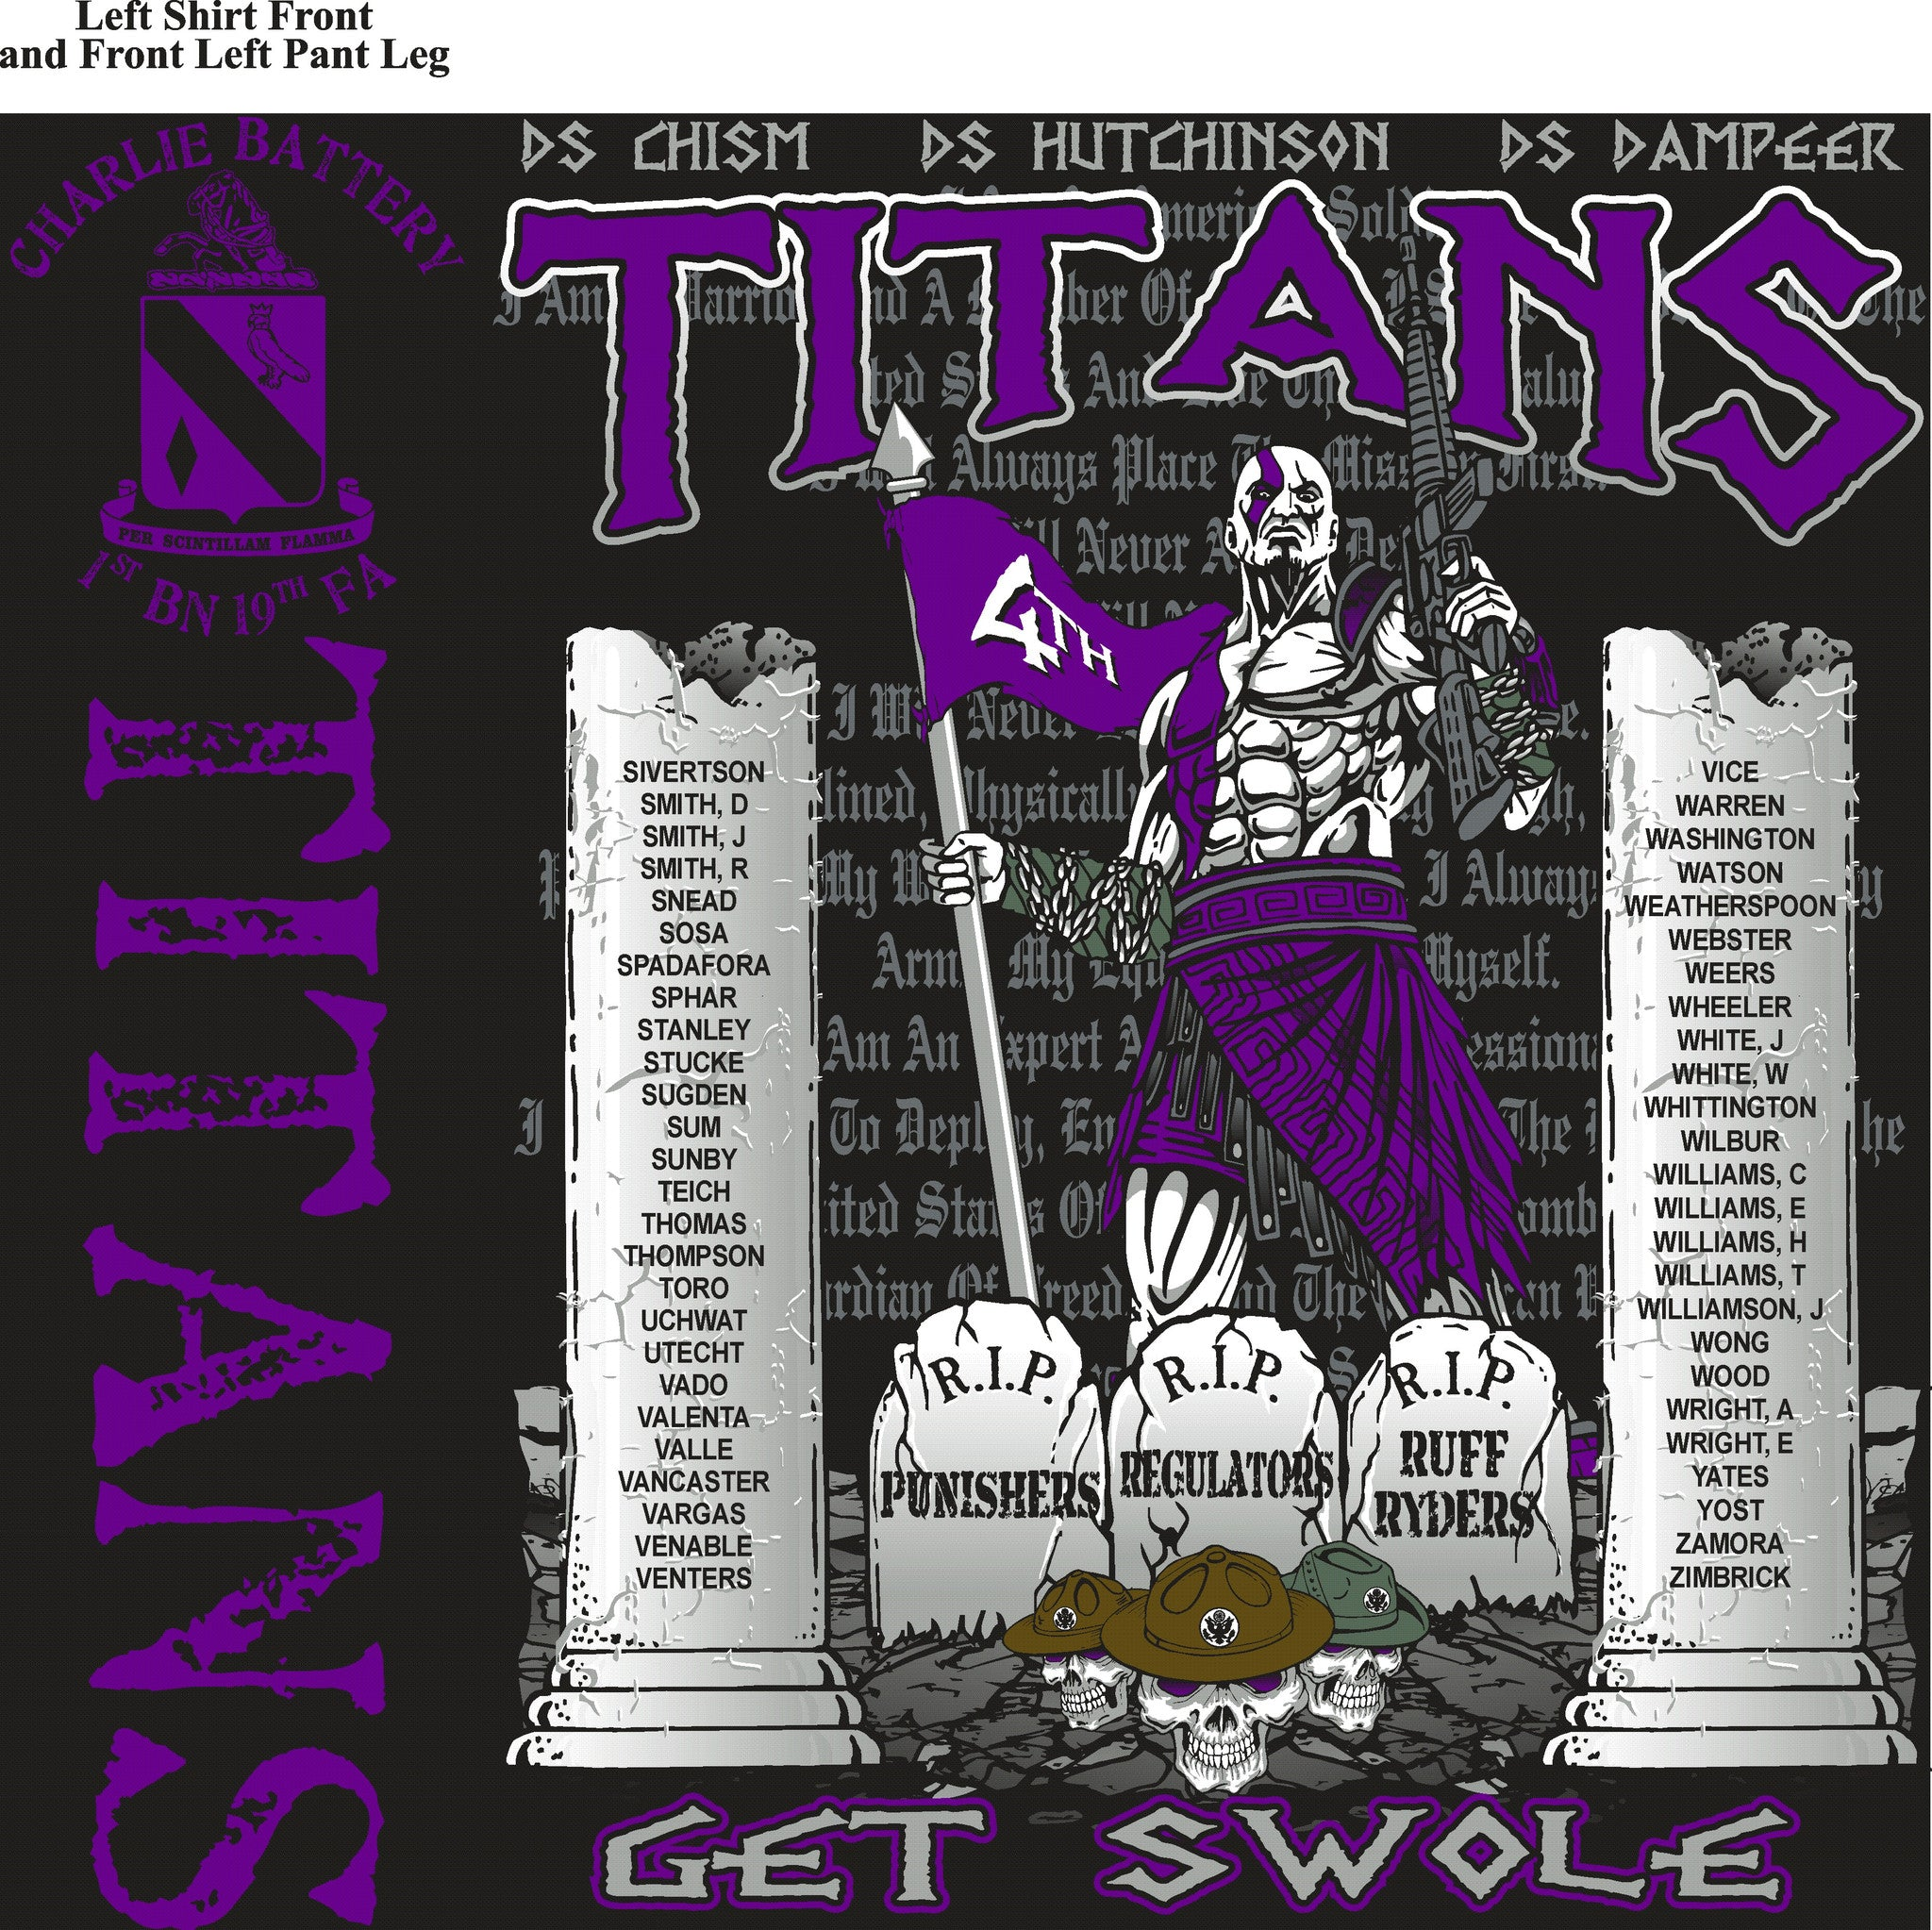 Platoon Shirts (digital) CHARLIE 1st 19th TITANS AUG 2015